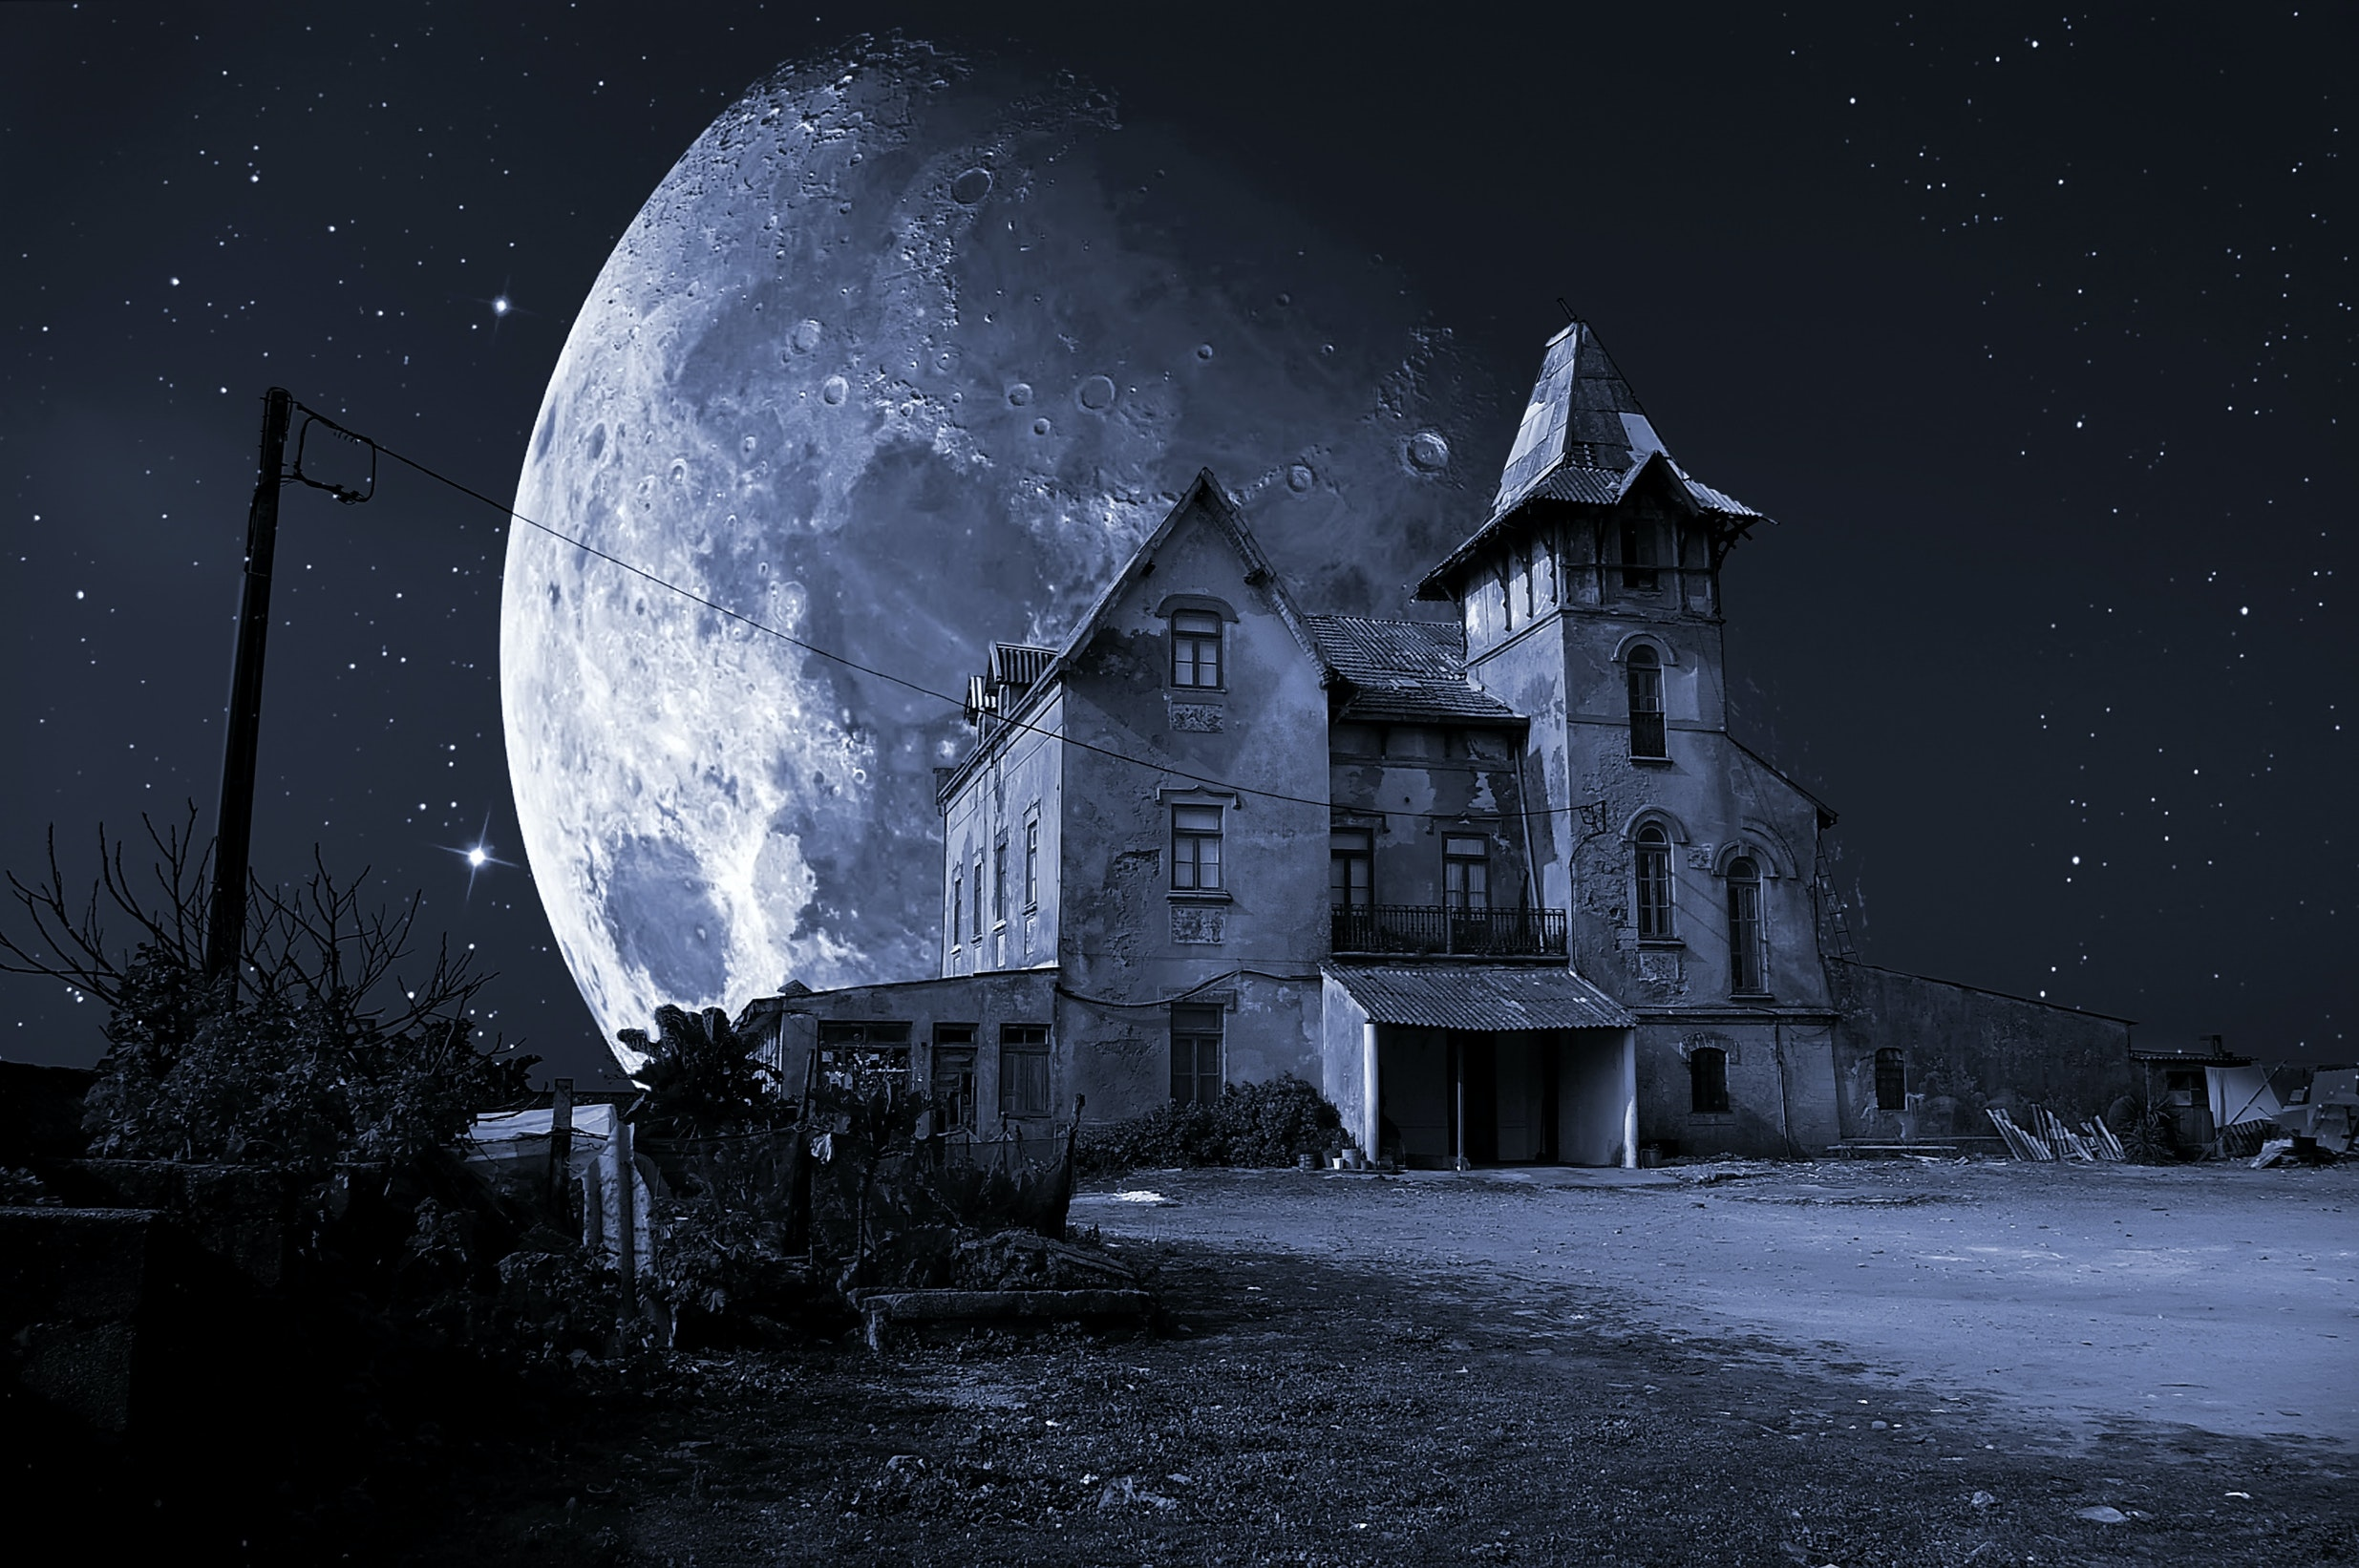 Evolutionary Psychology Explains Why Haunted Houses Creep Us Out